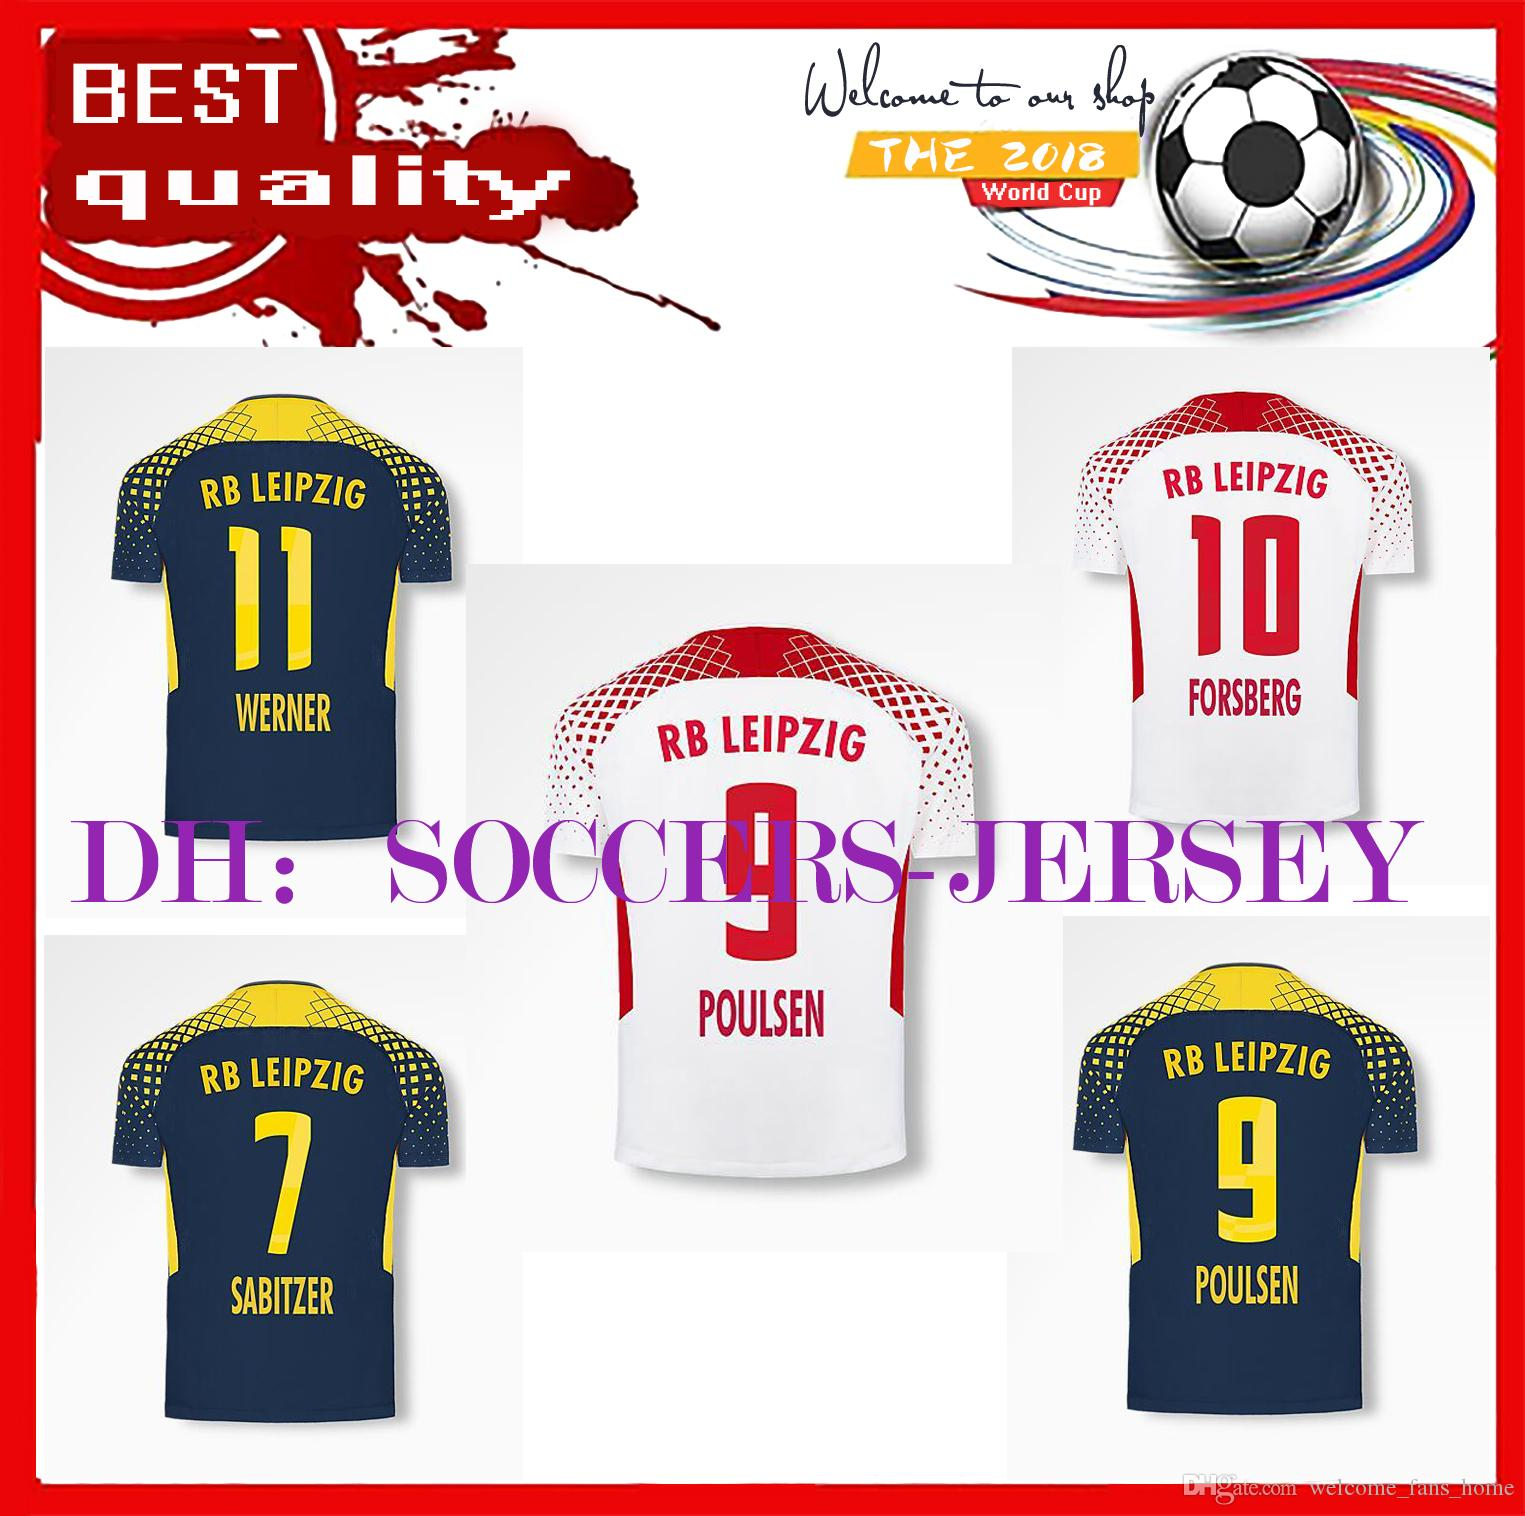 2017/18 RB LEIPZIG KEITA WERNER POULSEN CAMISETAS FUTBOL thai quality football jersey thailand football jerseys footbal jerseys uniforms